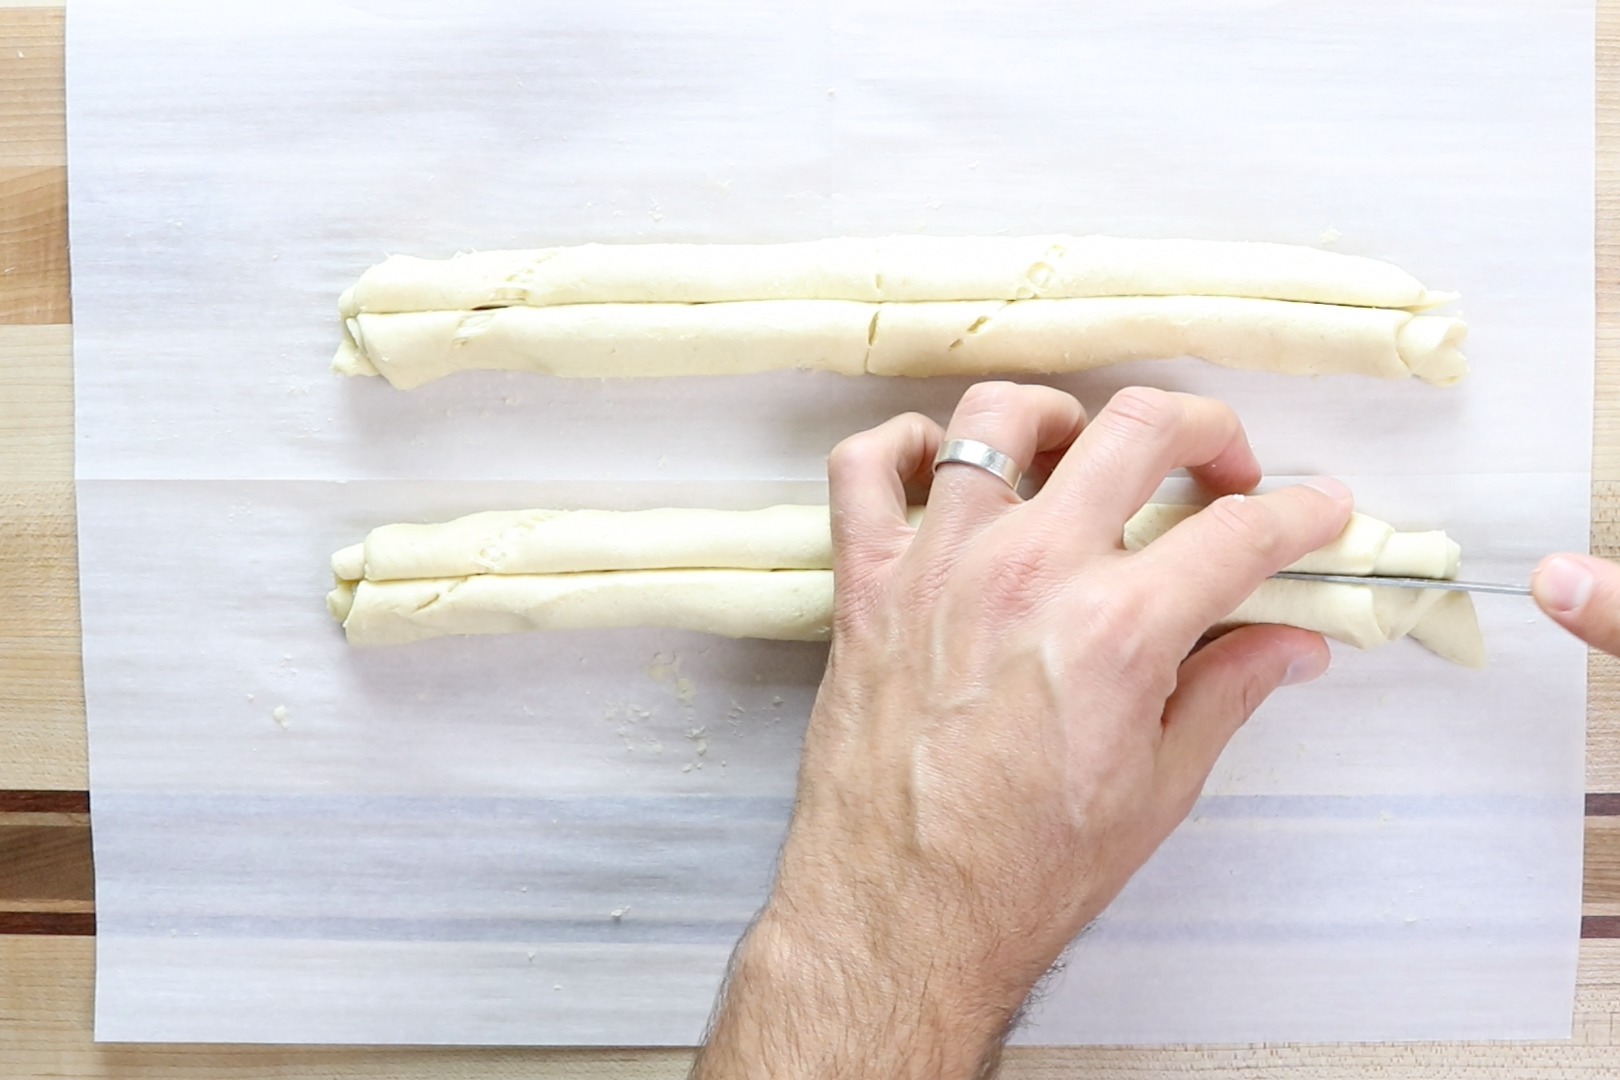 5. Then, cut each roll in half vertically down the center. Grab the ends of each piece of dough and gently pull them in opposite directions to stretch the dough a little. -